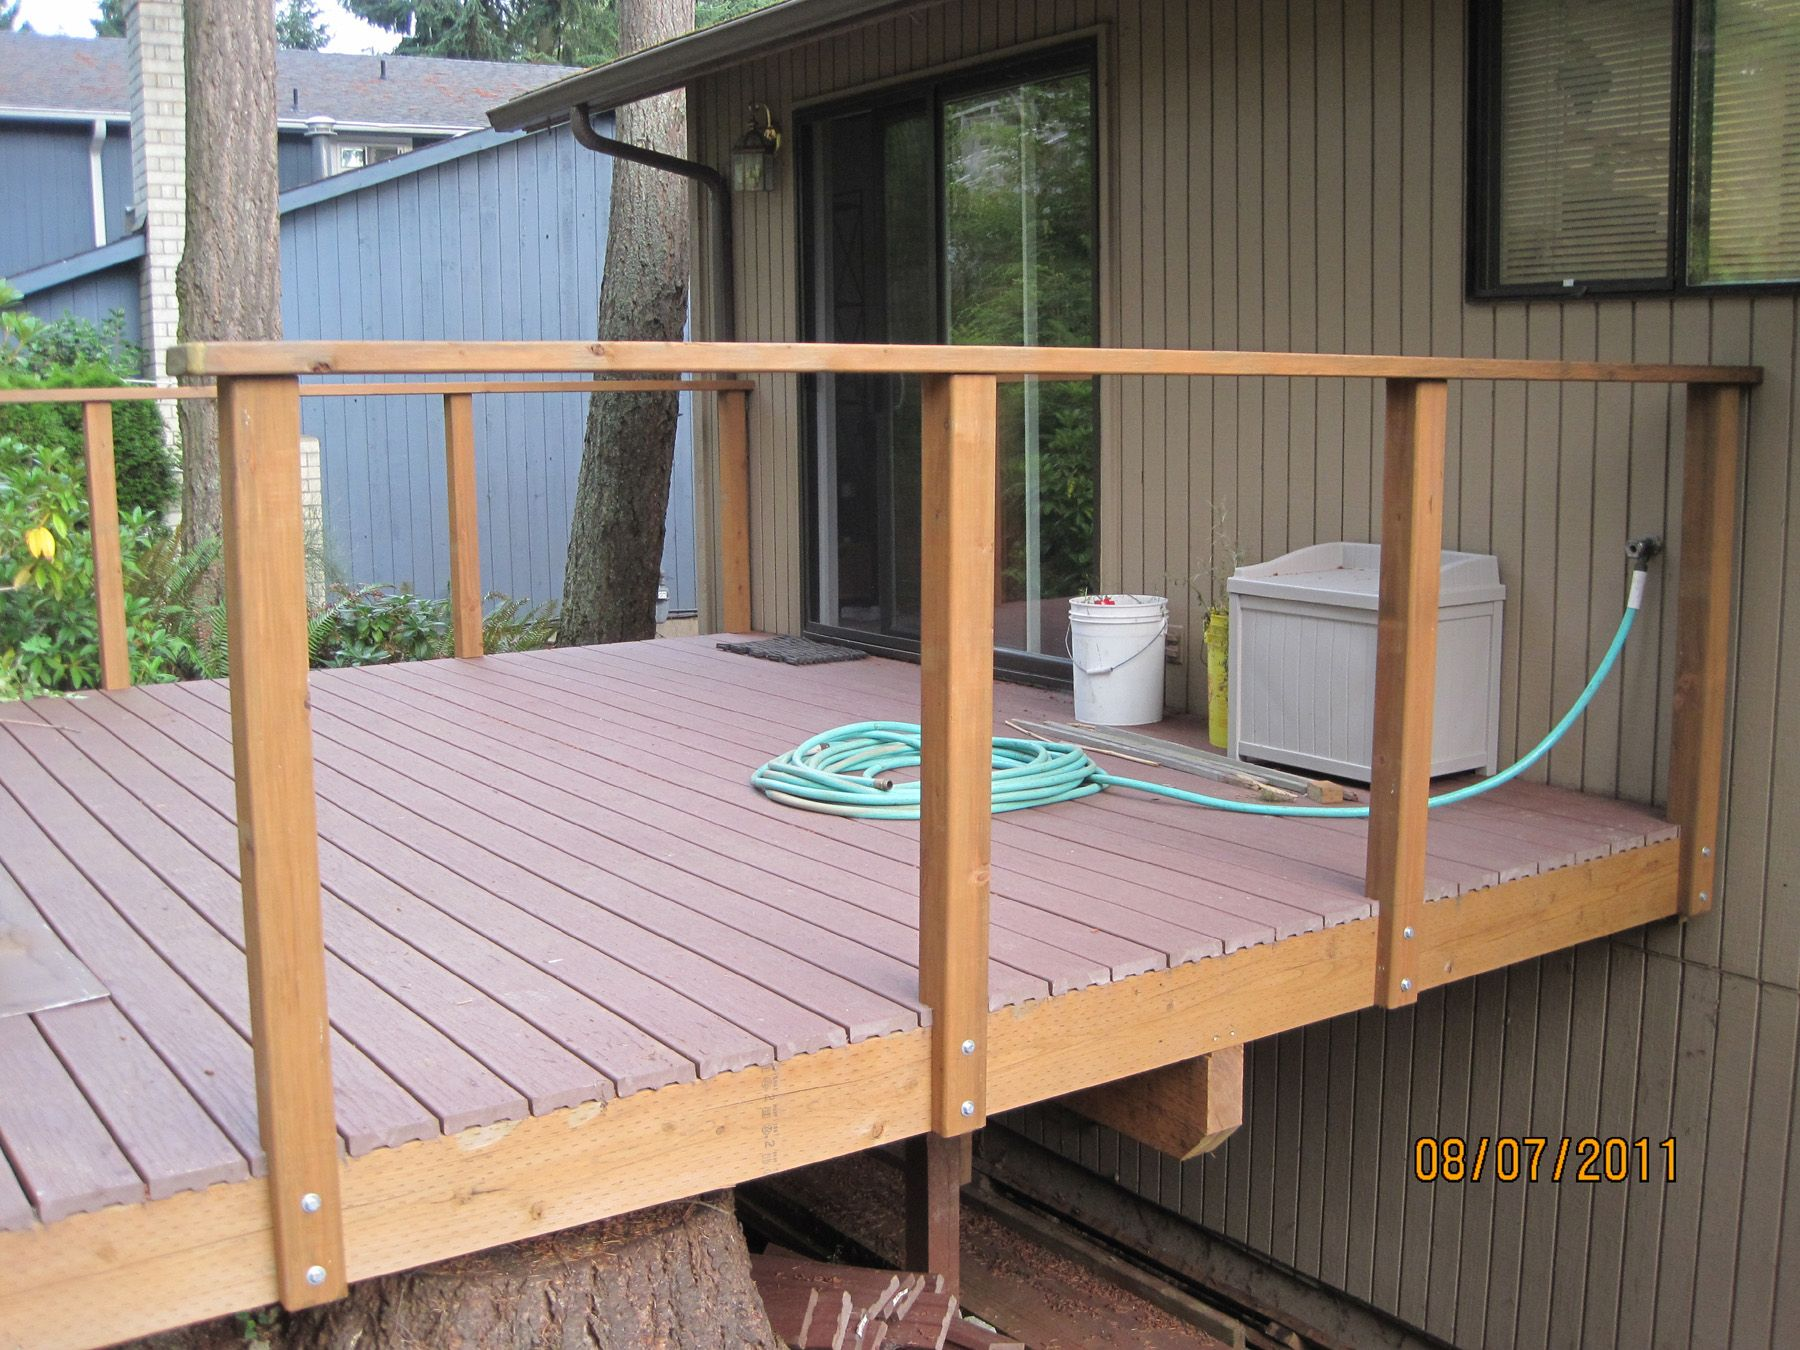 How to install a deck railing - Deck Railings